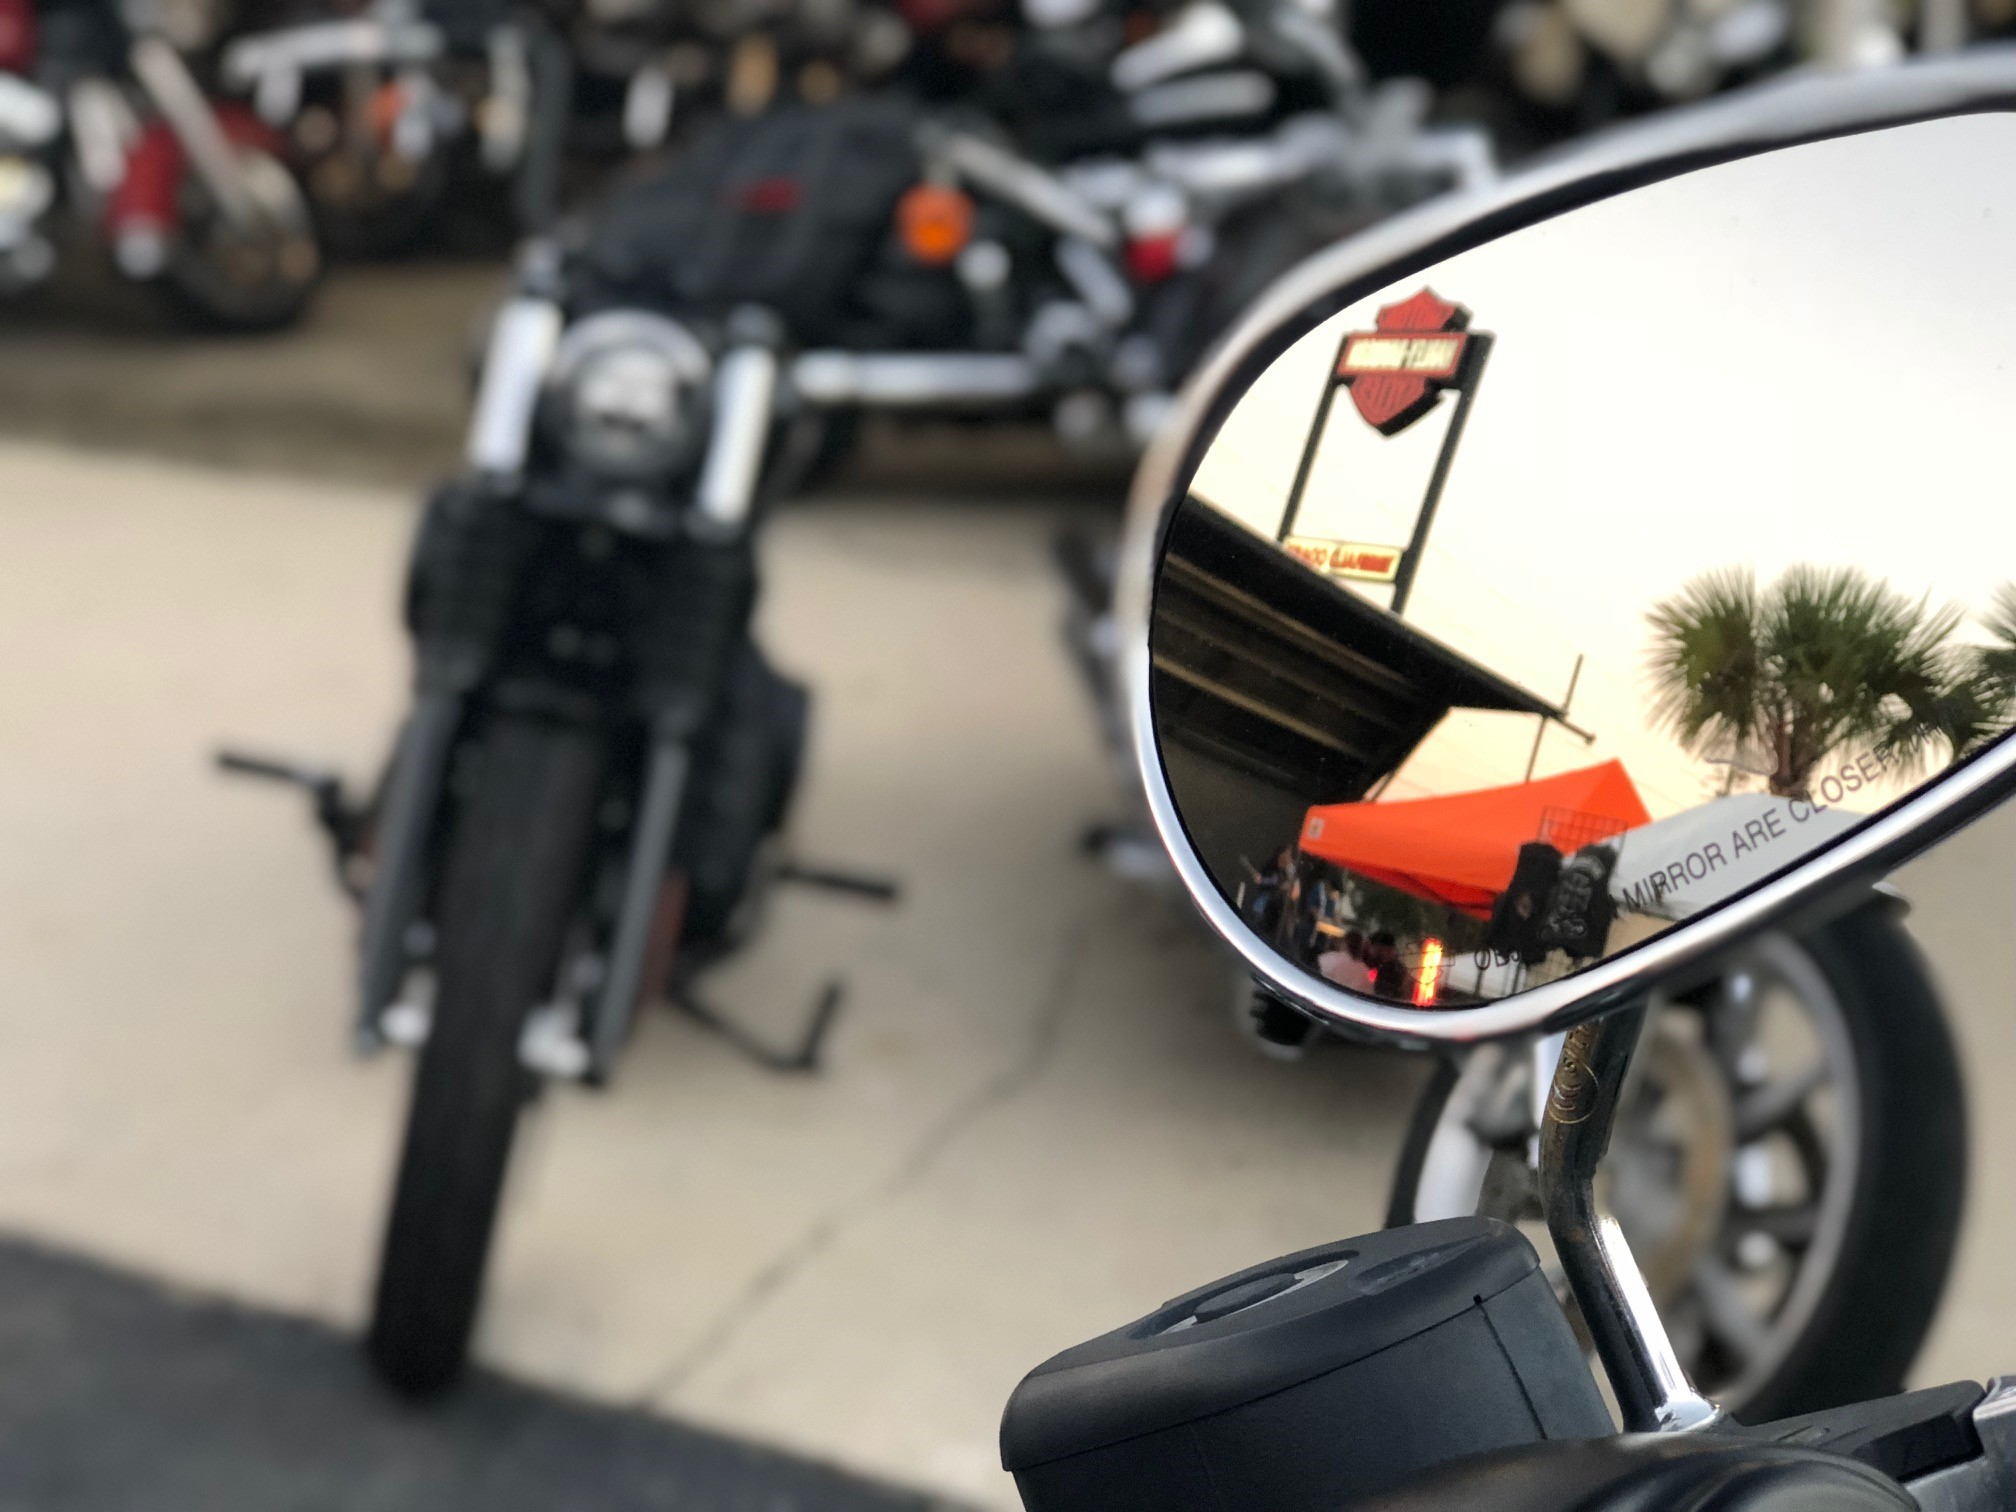 hd logo in bike mirror